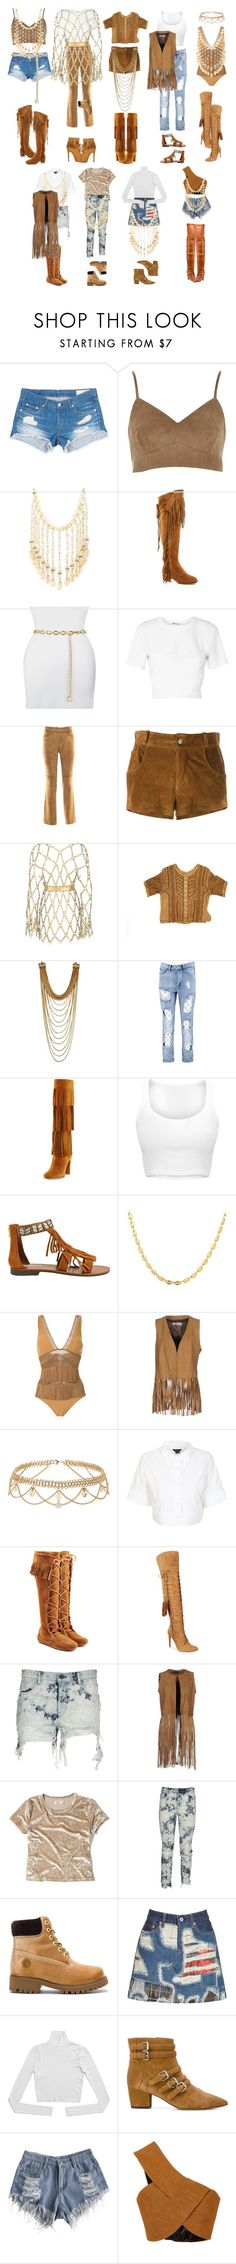 """""""✮ 'Find A Way' Concept ✮"""" by tialua ❤ liked on Polyvore featuring rag & bone/JEAN, Charlotte Russe, Lady Godiva, Neiman Marcus, T By Alexander Wang, Dolce&Gabbana, Au Jour Le Jour, Zana Bayne, Boohoo and Stuart Weitzman"""